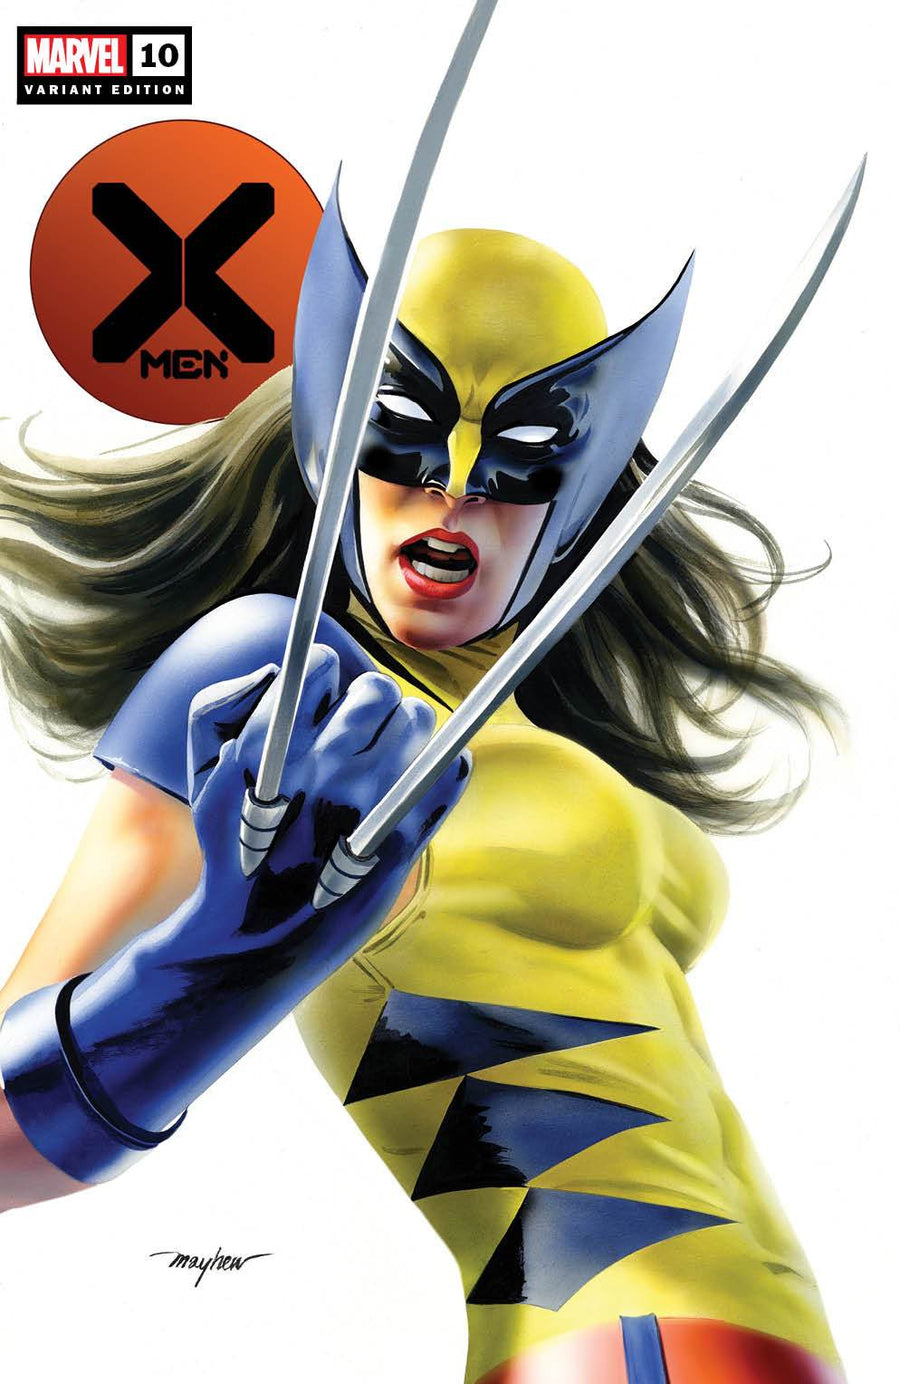 X-MEN #10 X-23 Variant Trade Dress Cover A Raw